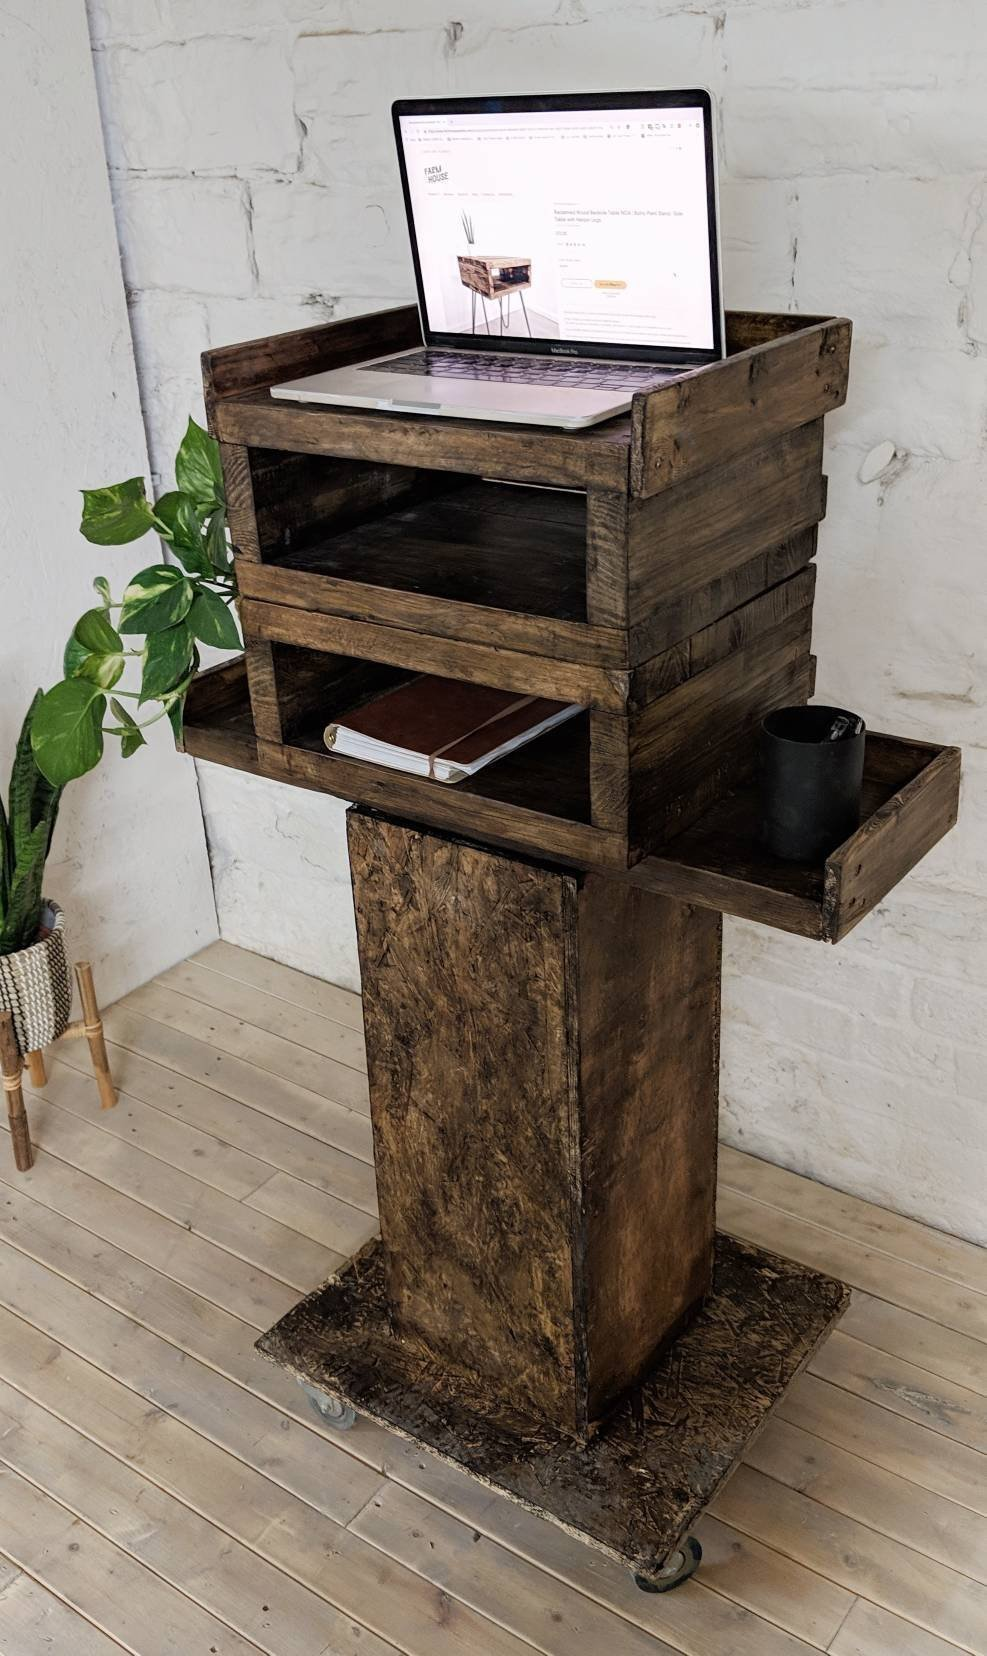 Reclaimed Wood Office Standing Desk Gemba Rustic Mobile Workstation Sit Stand Table For Laptop In Roast Coffee Finish With Wheels